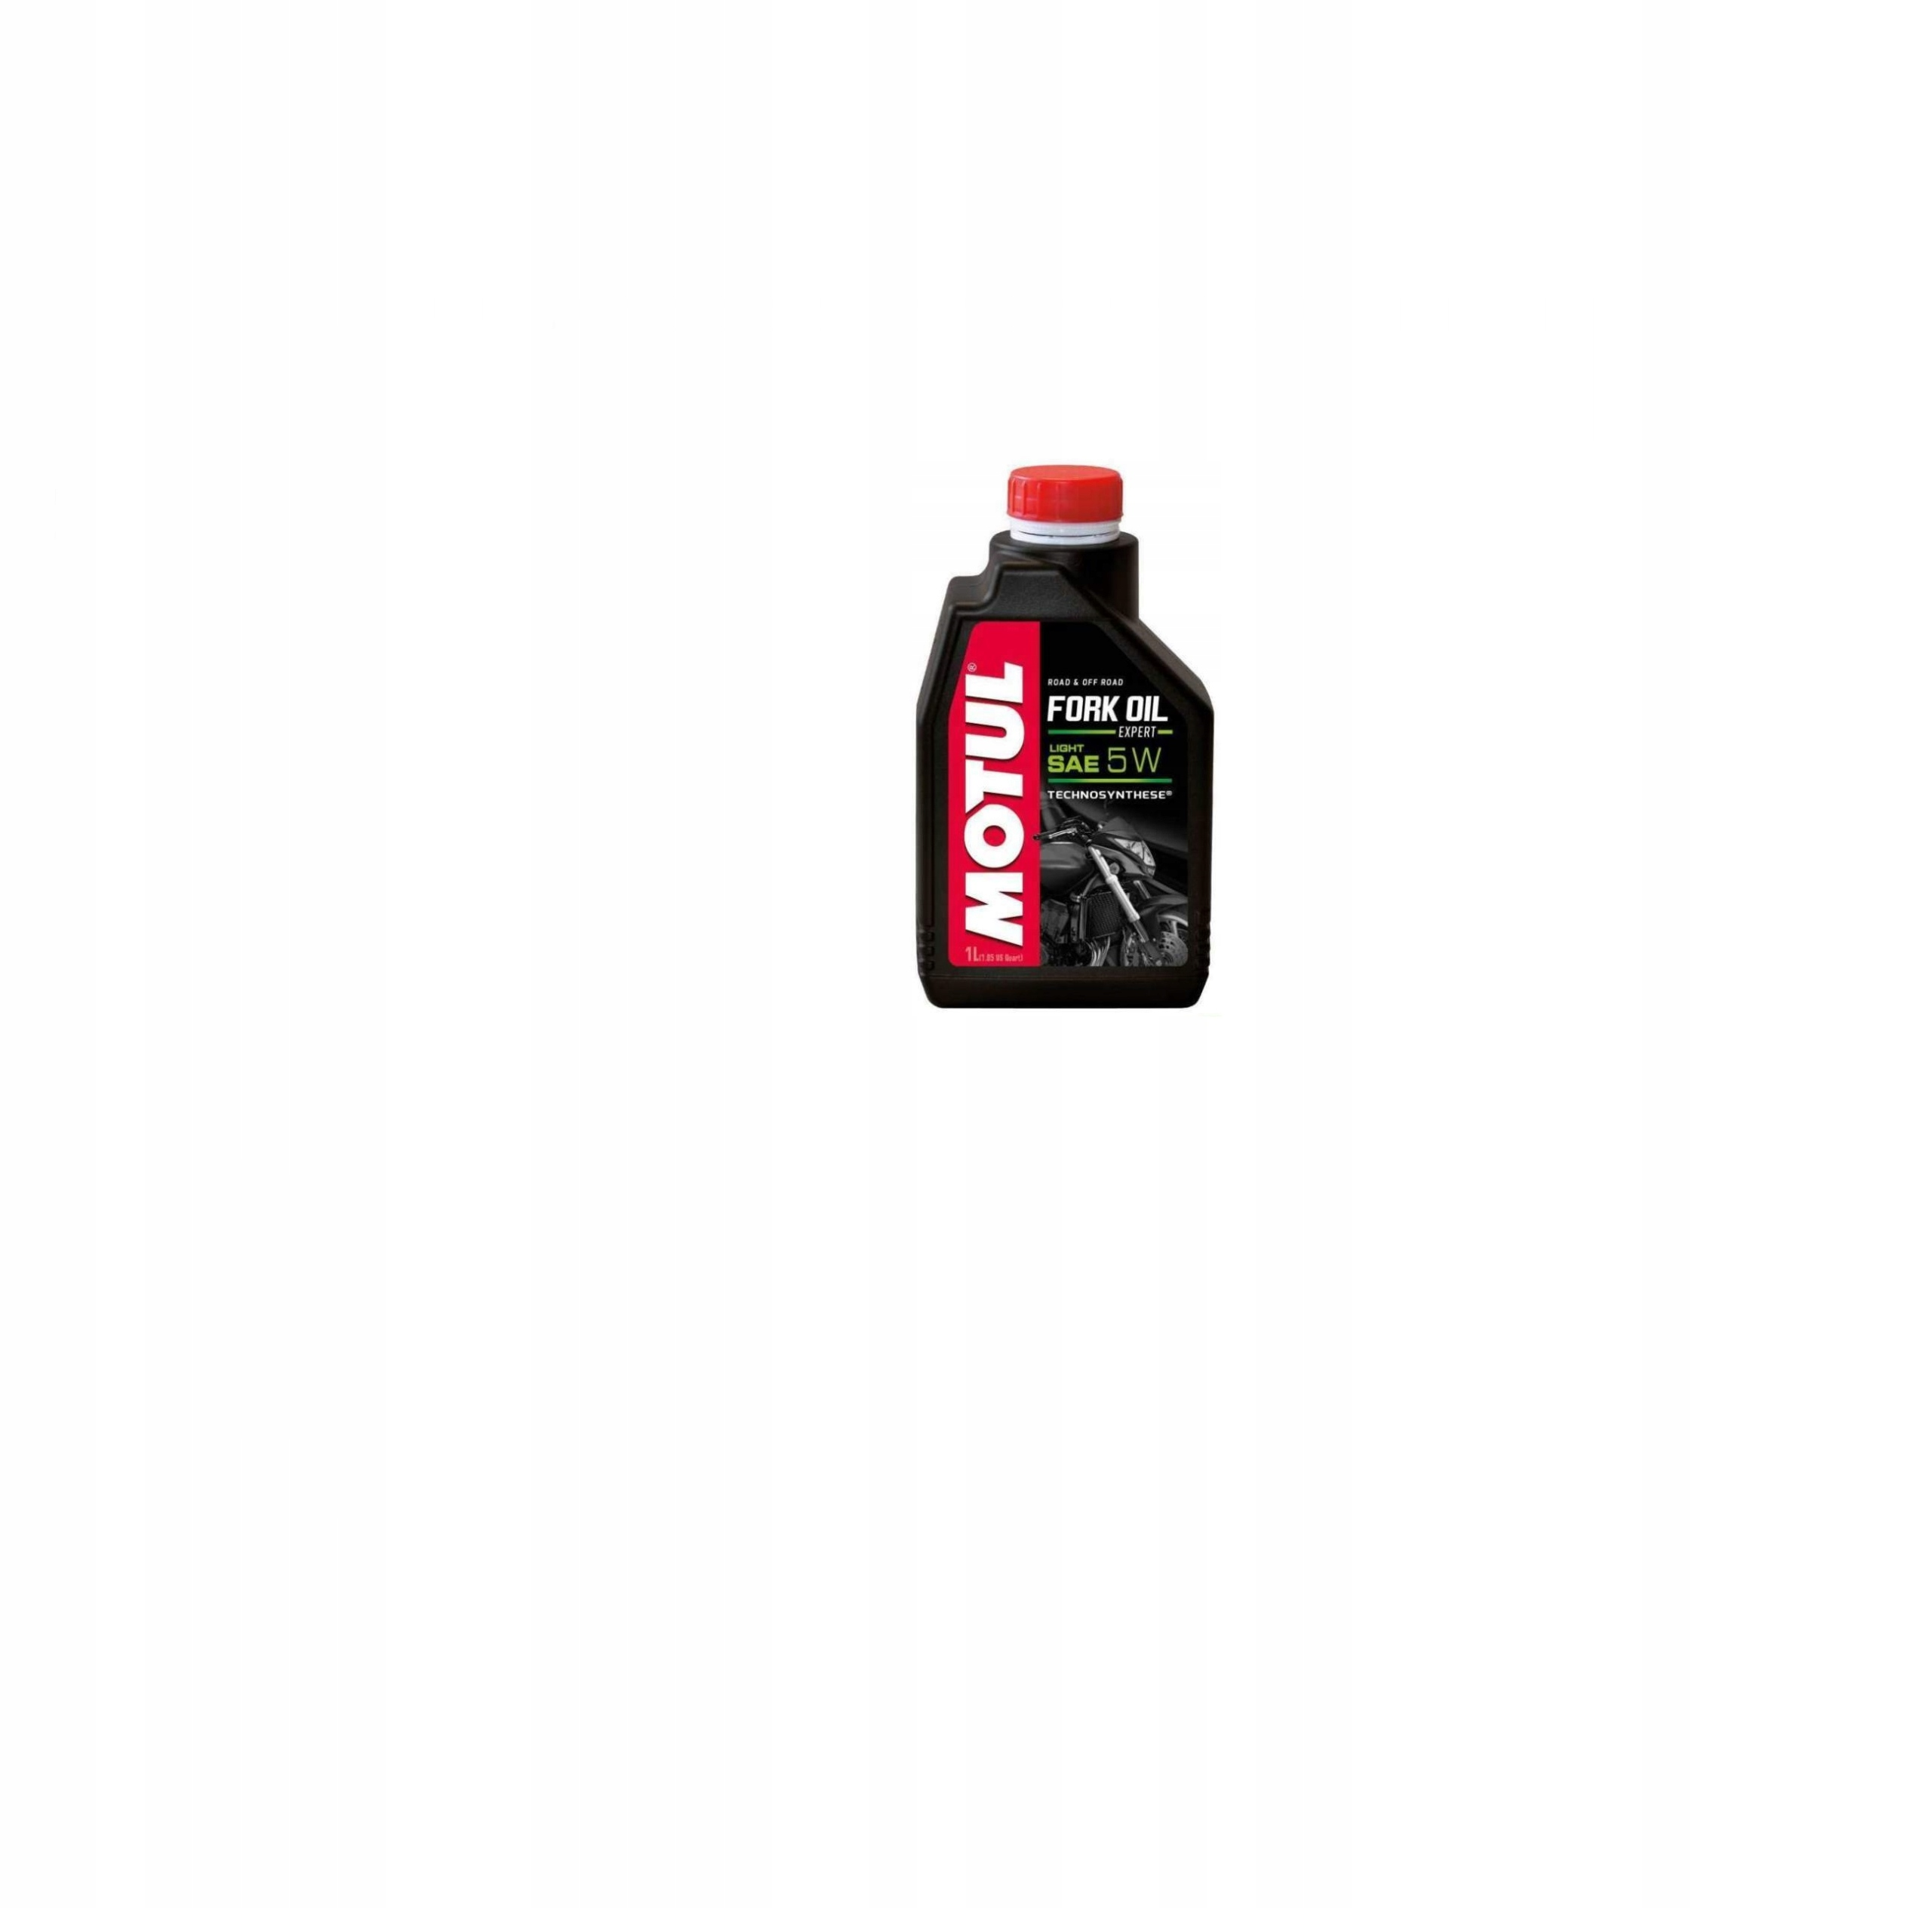 MOTUL МАСЛО ДЛЯ АМОРТИЗАТОРОВ 5W FORK OIL EXP L 1L